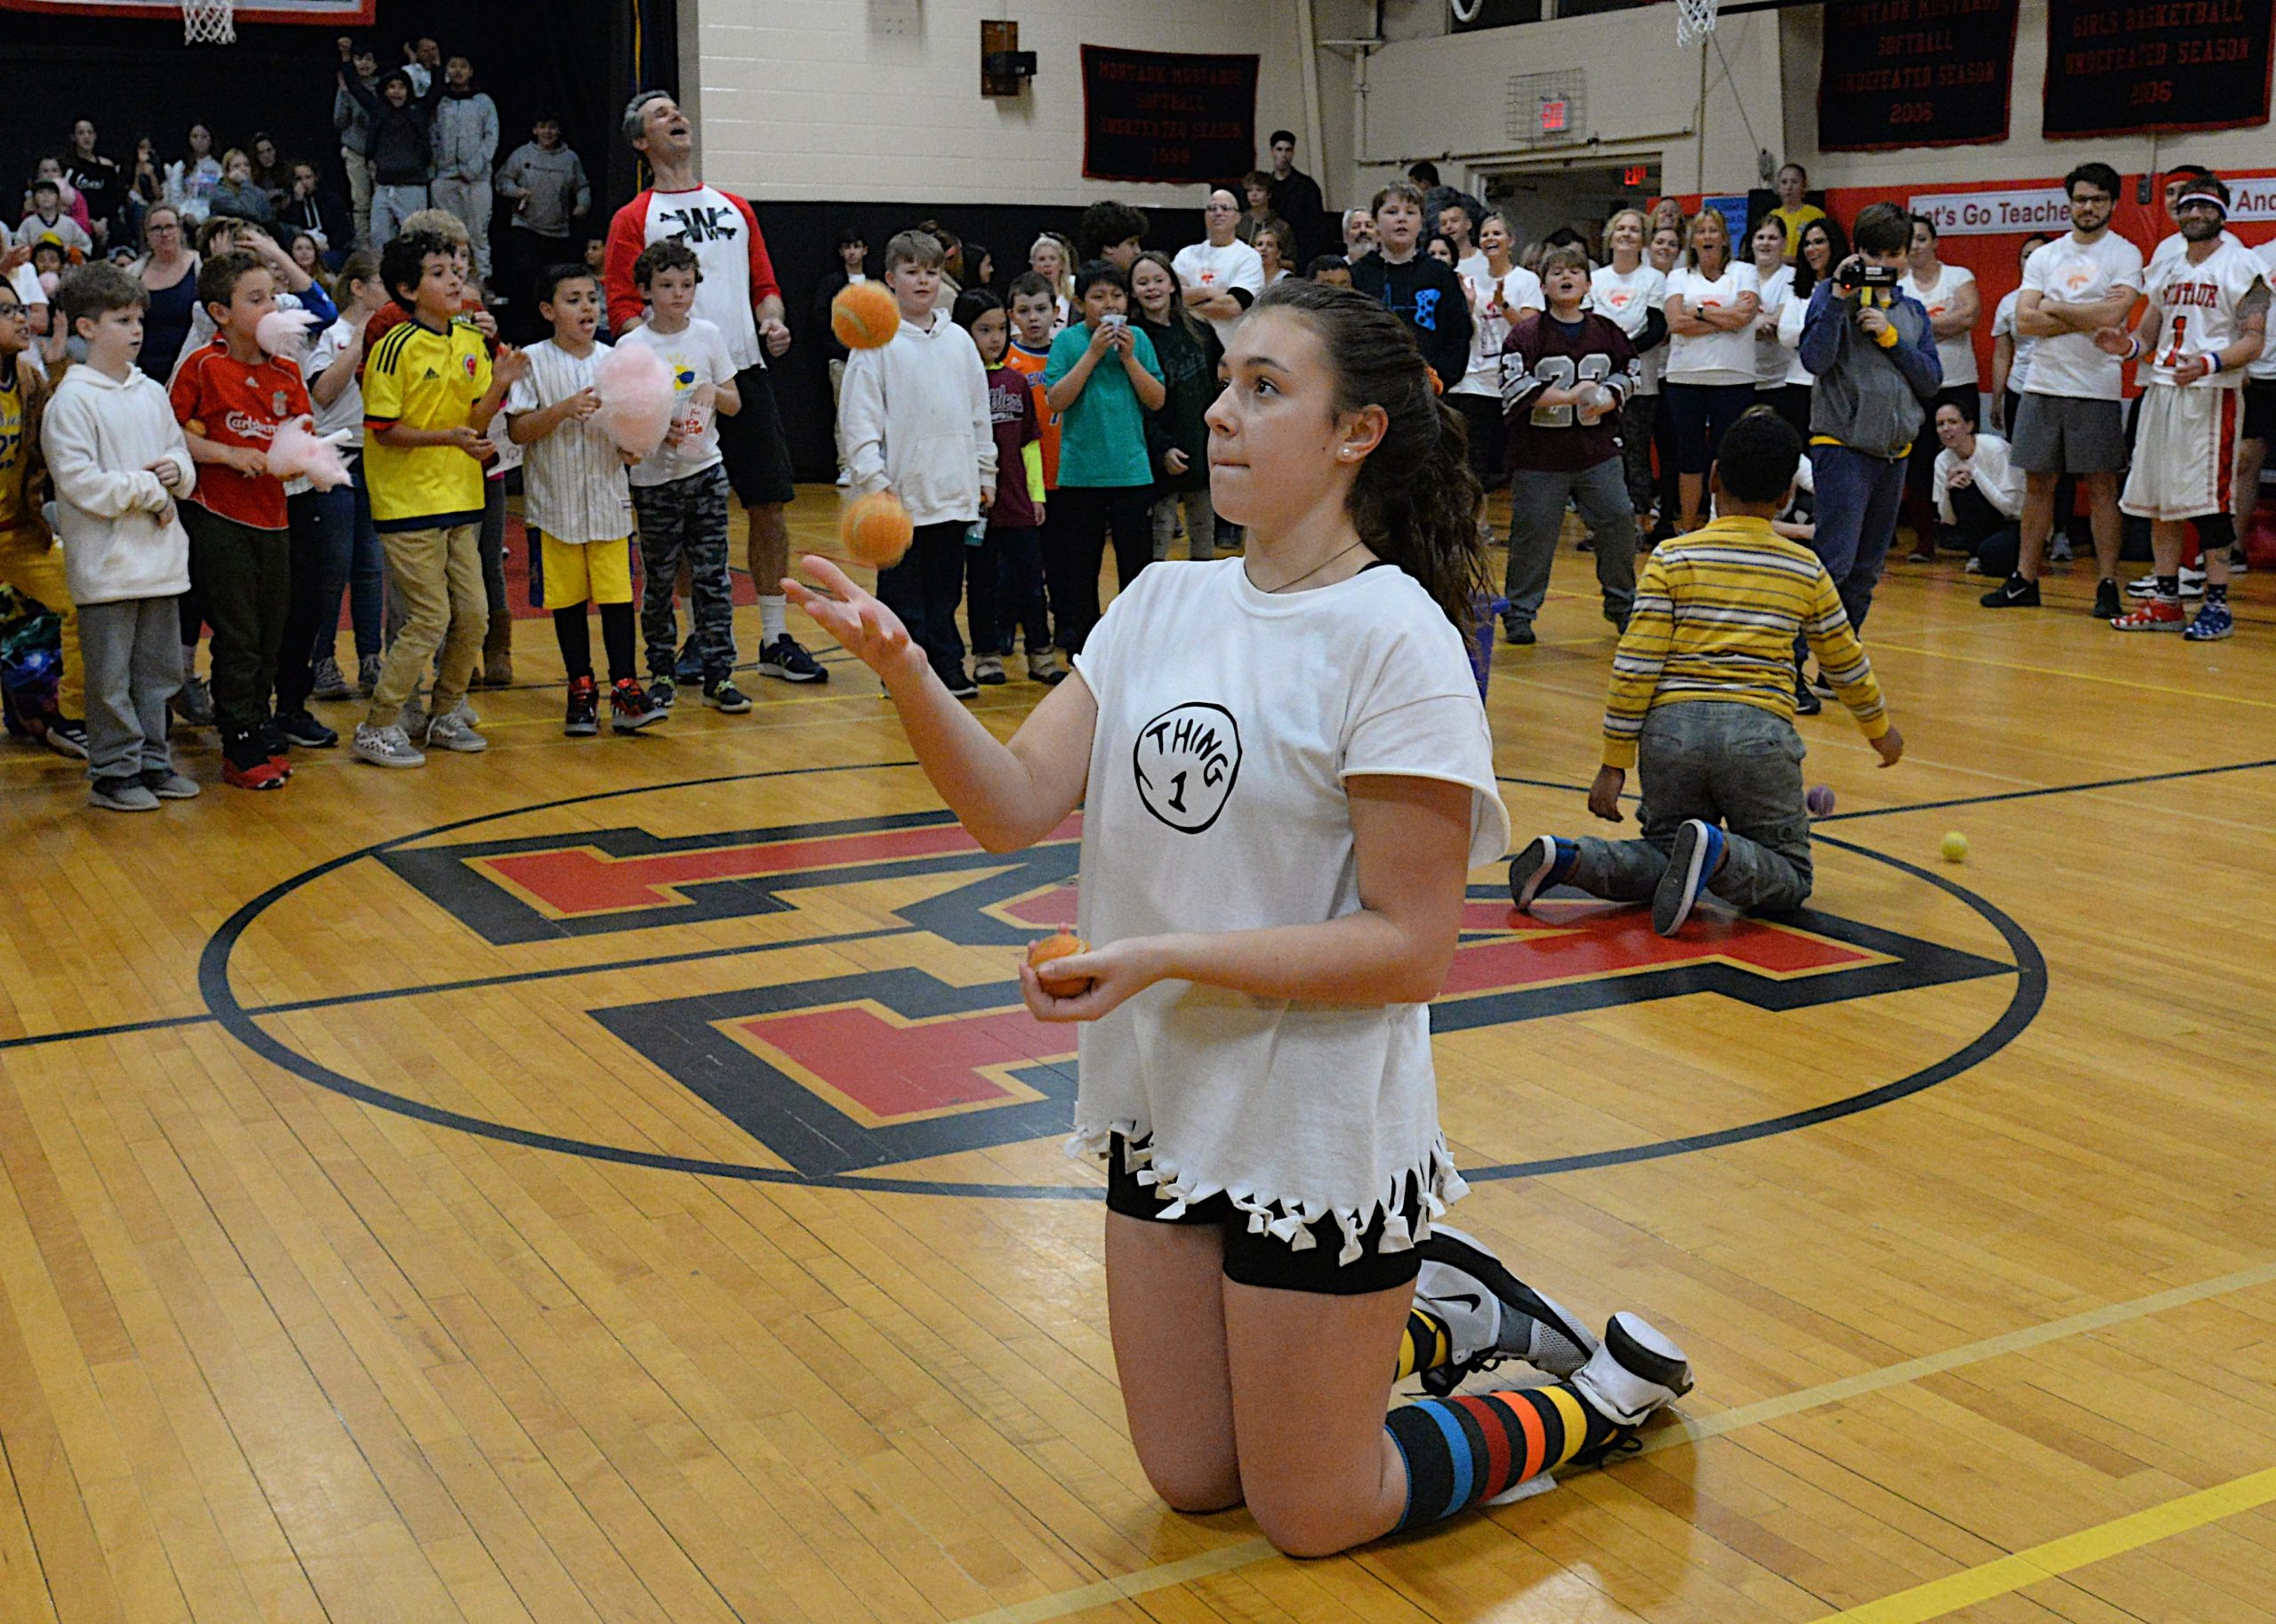 Montauk School held its Sports Night on Friday, during which teachers and eighth grade students competed in a variety of contests before a packed house of cheering students and parents. Katie Kuneth won the juggling event. KYRIL BROMLEY